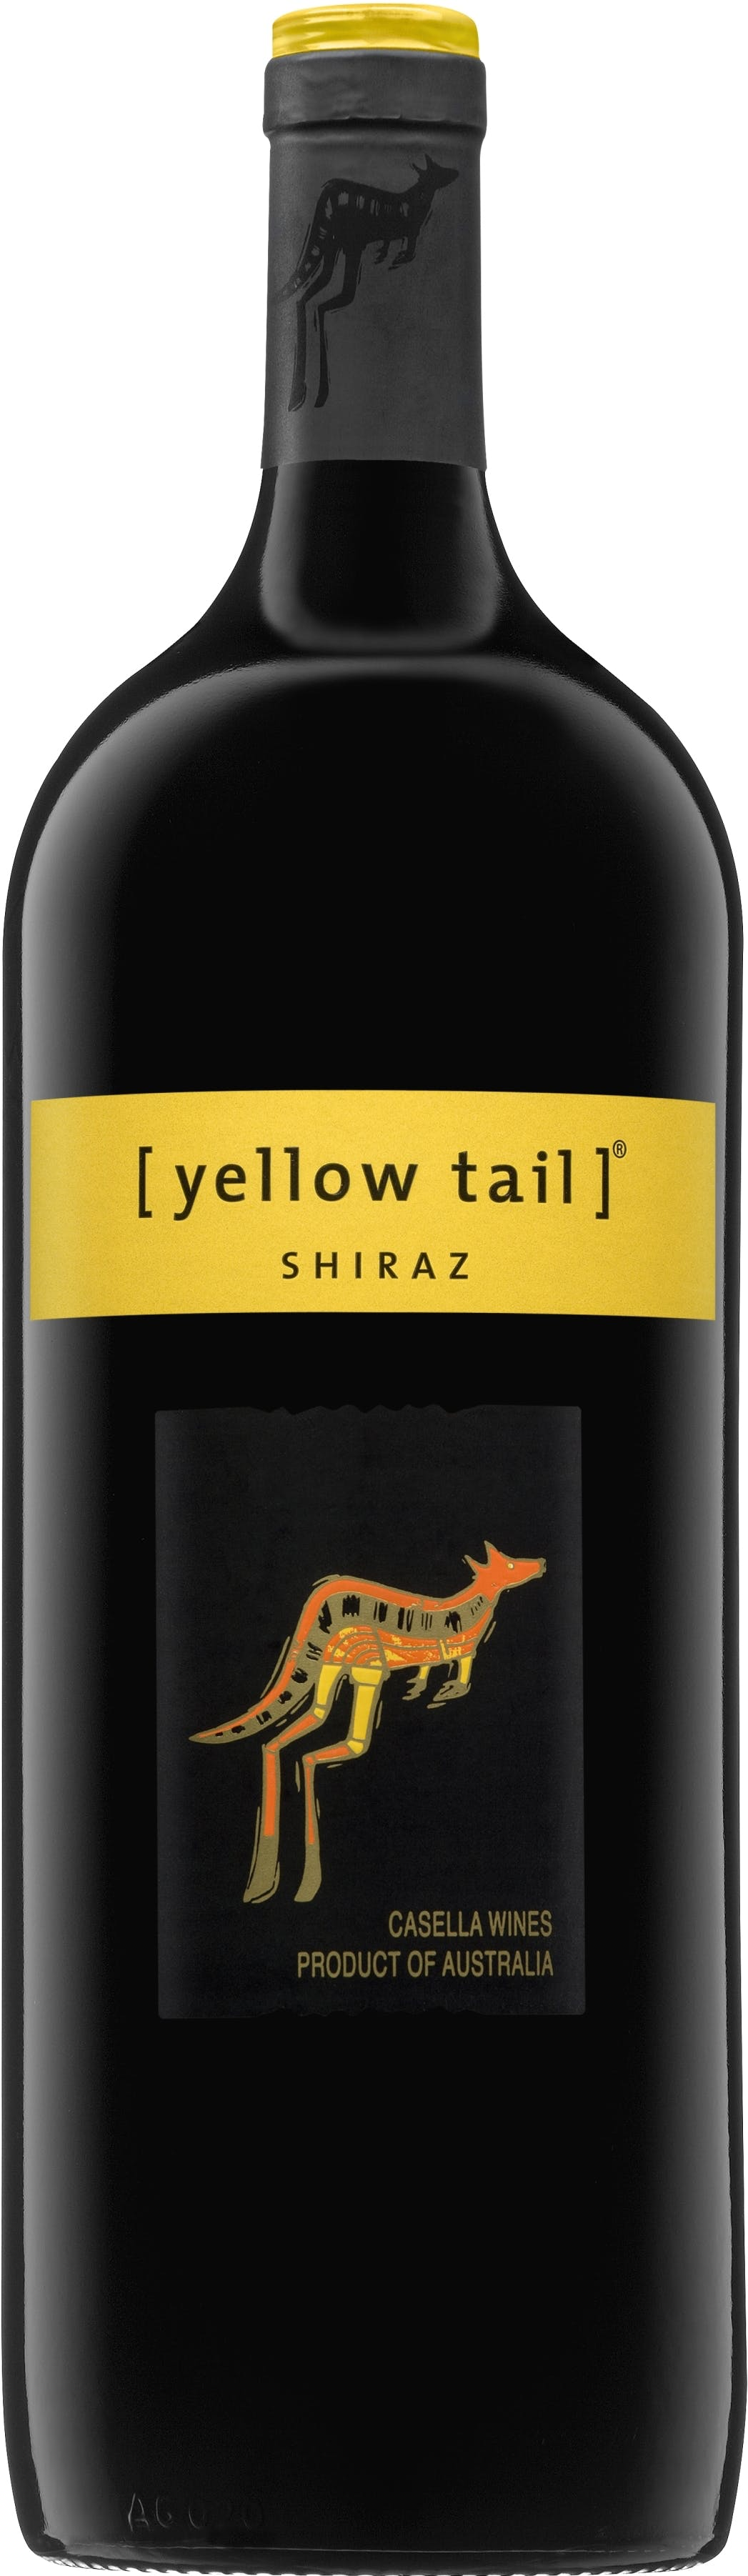 [yellow tail] Shiraz